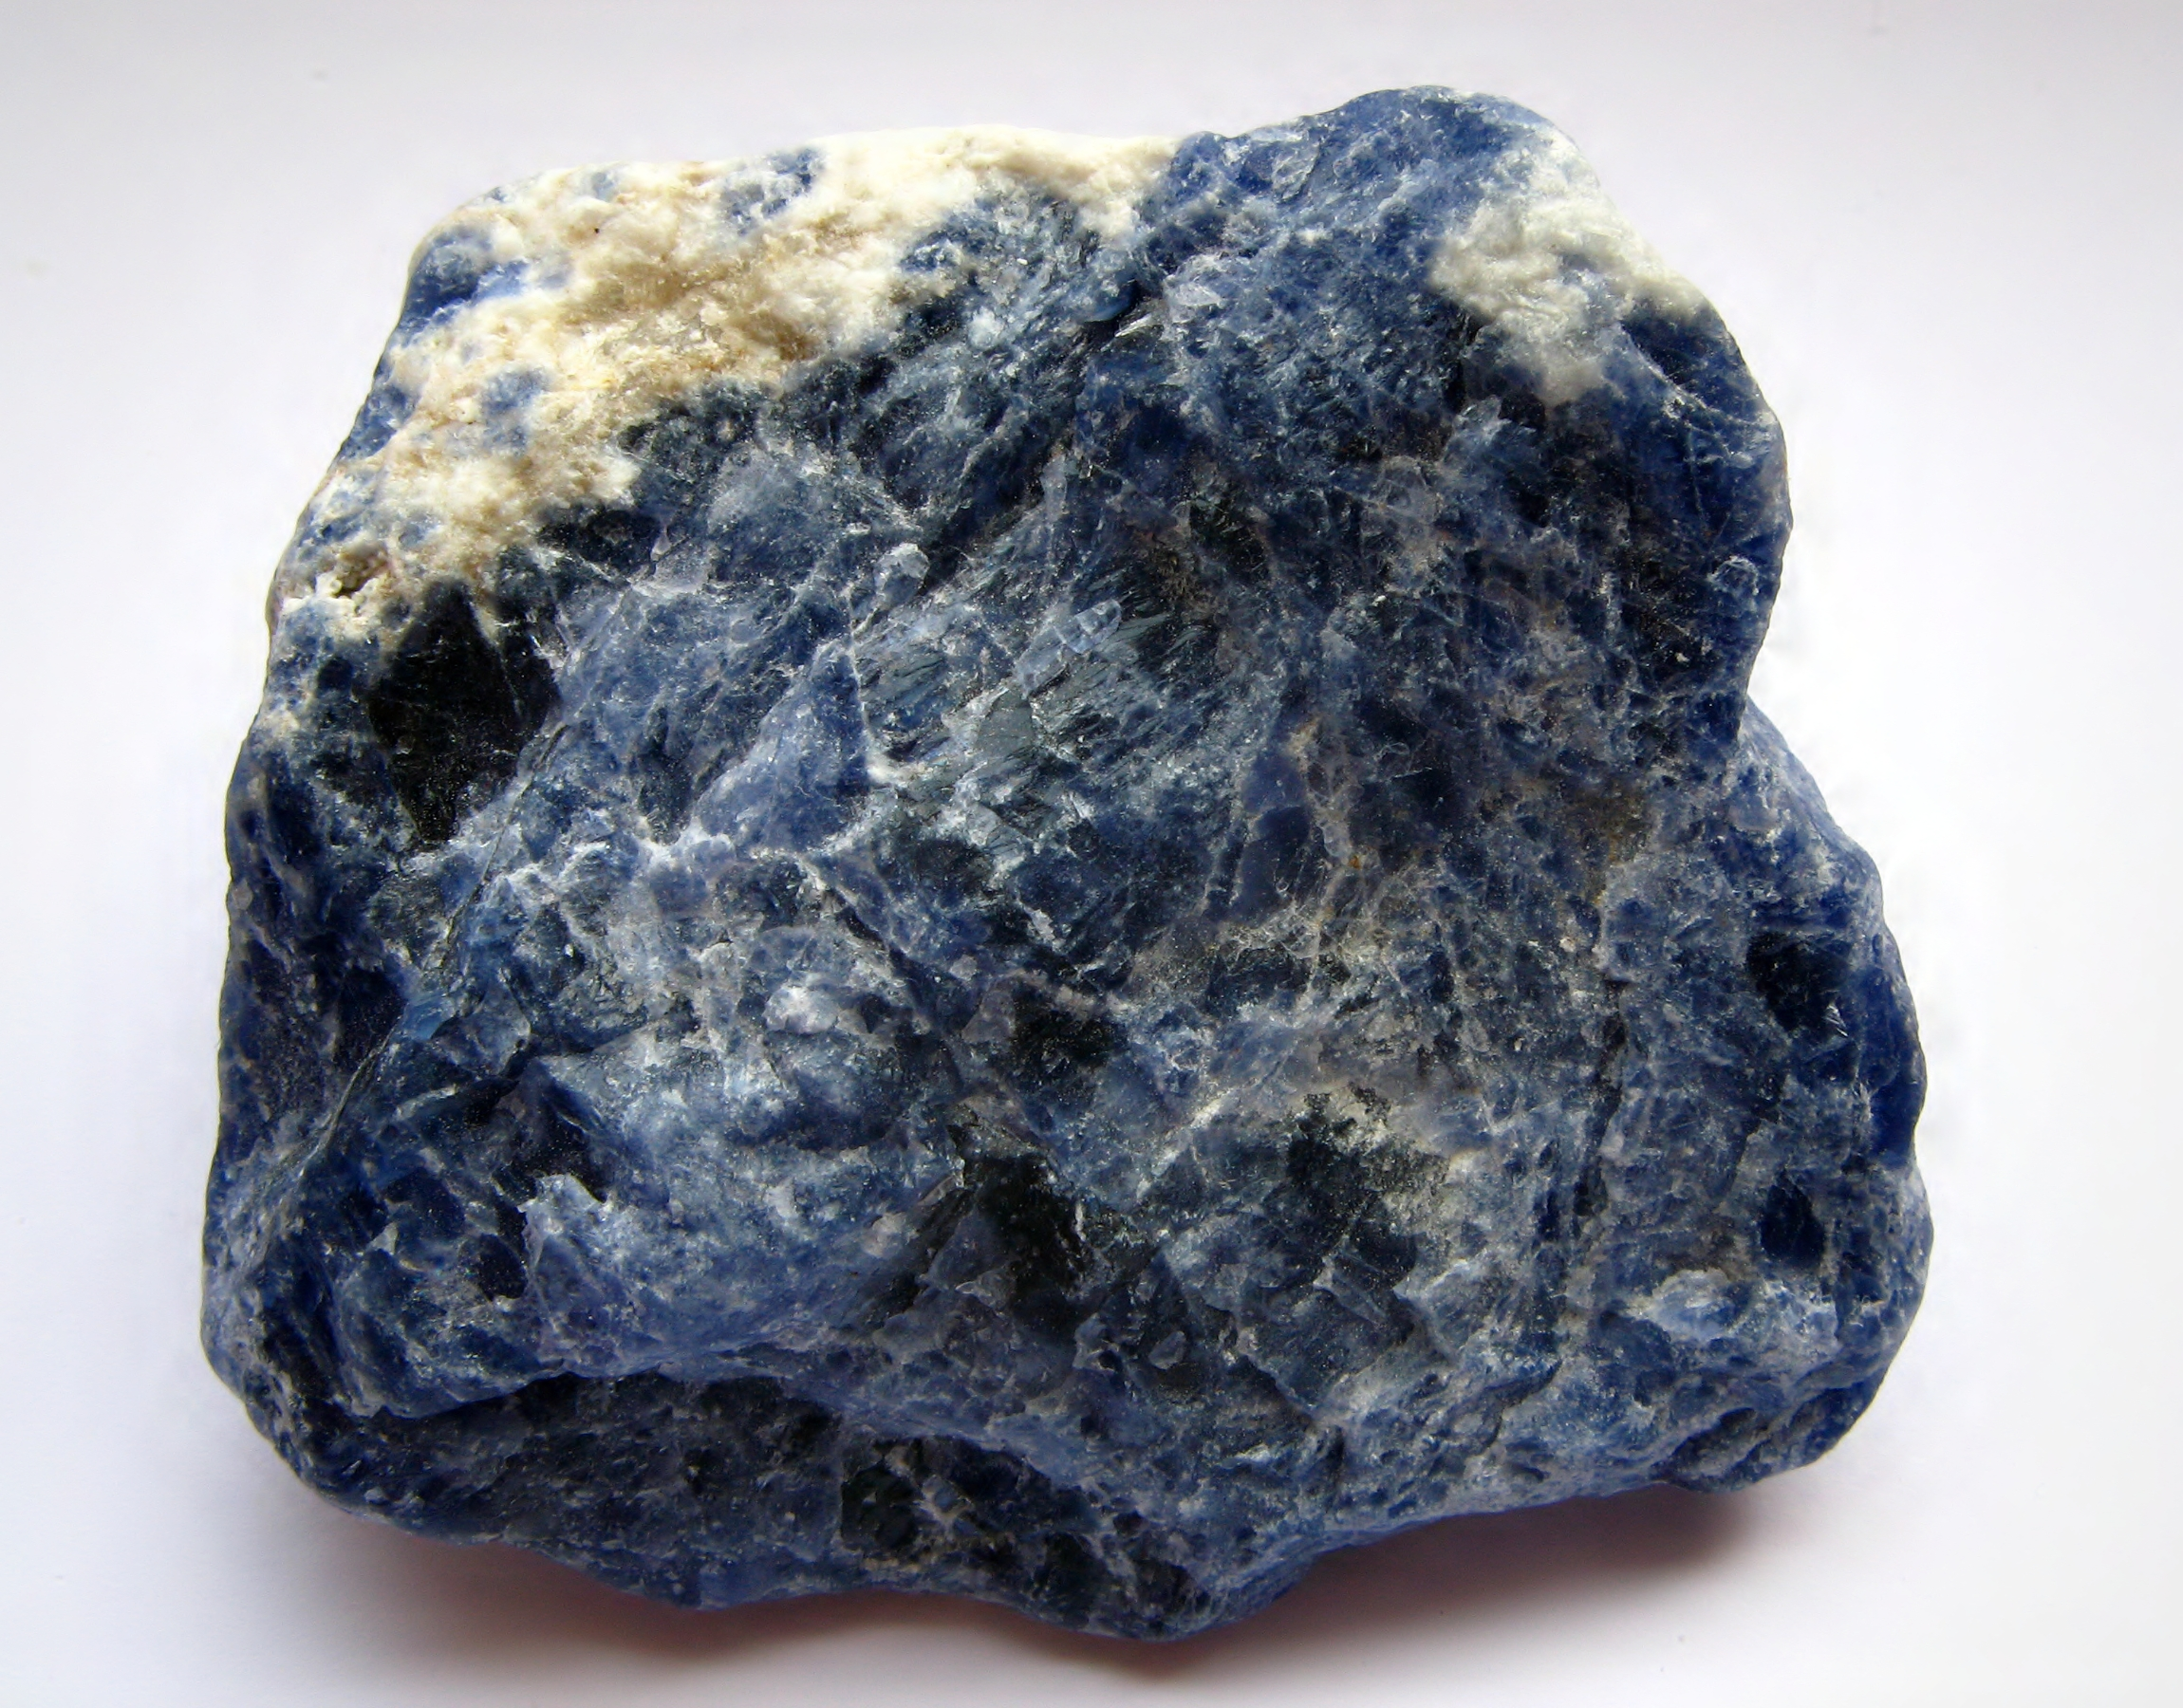 Sodalite - Land of Legends Mineral Gallery